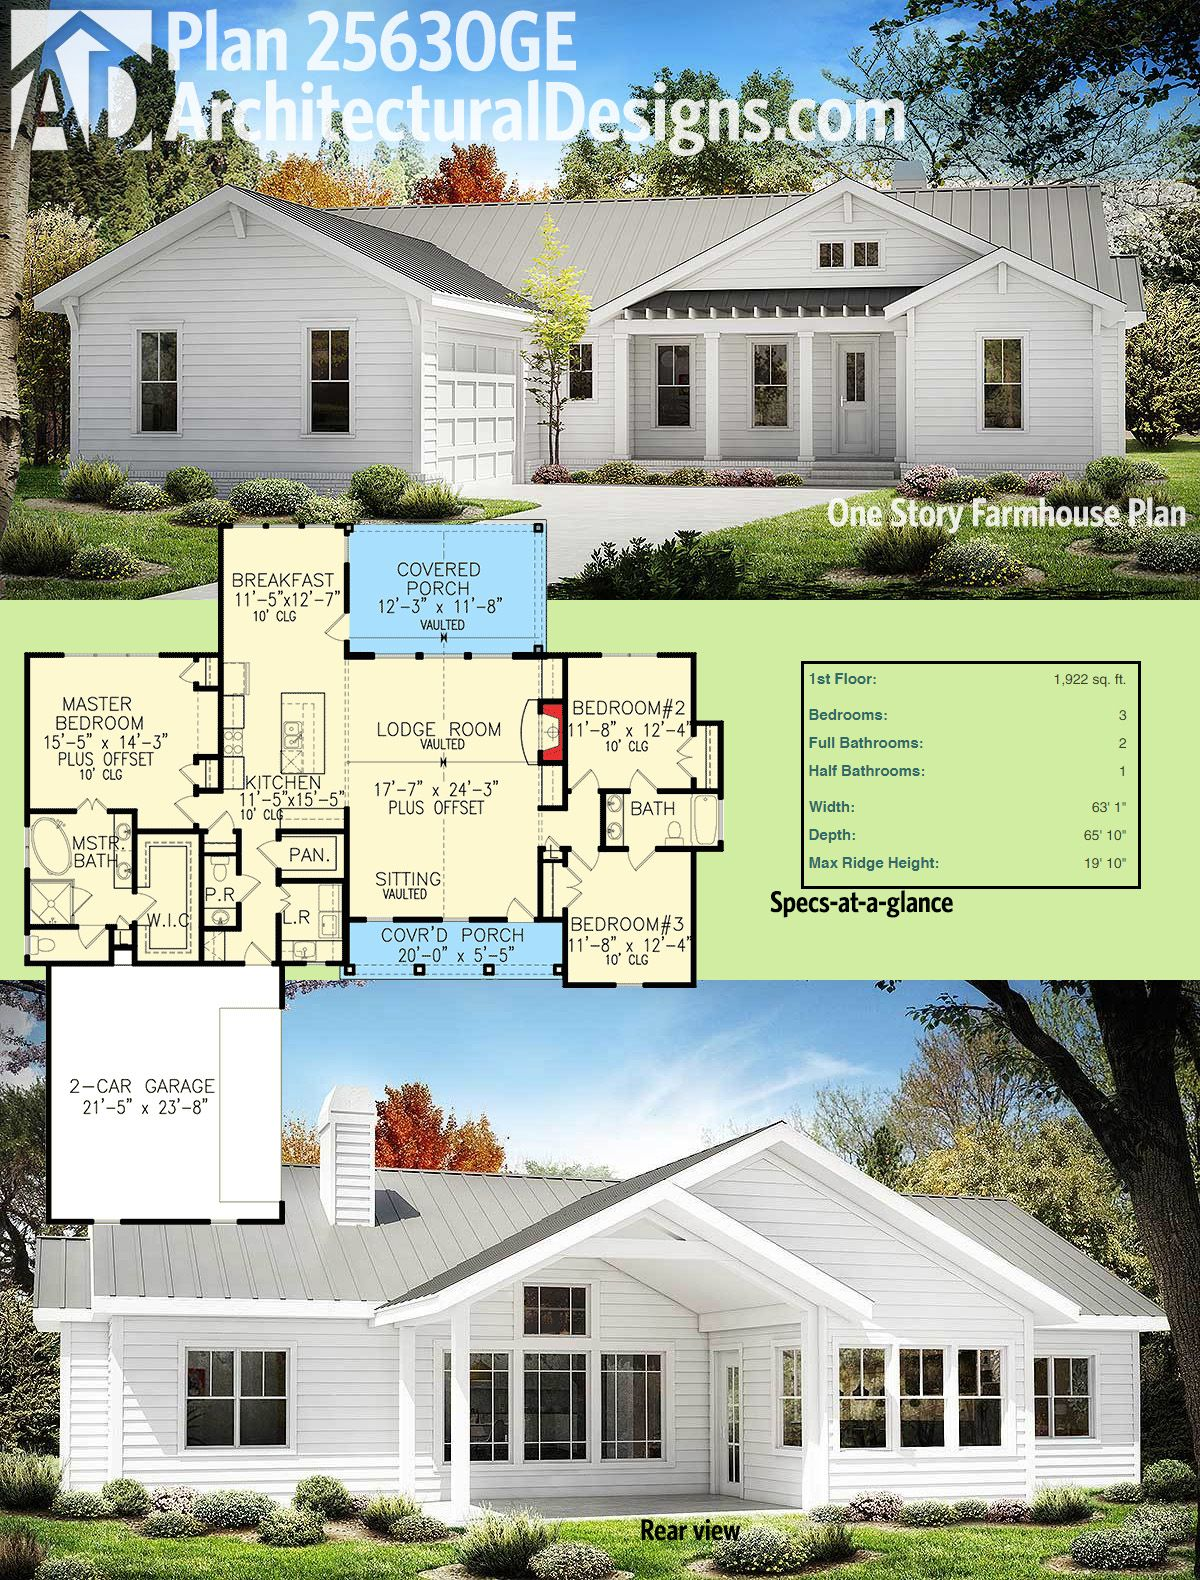 Architectural designs one story modern farmhouse plan 25630ge gives you 3 beds and over 1900 square feet of heated living ready when you are